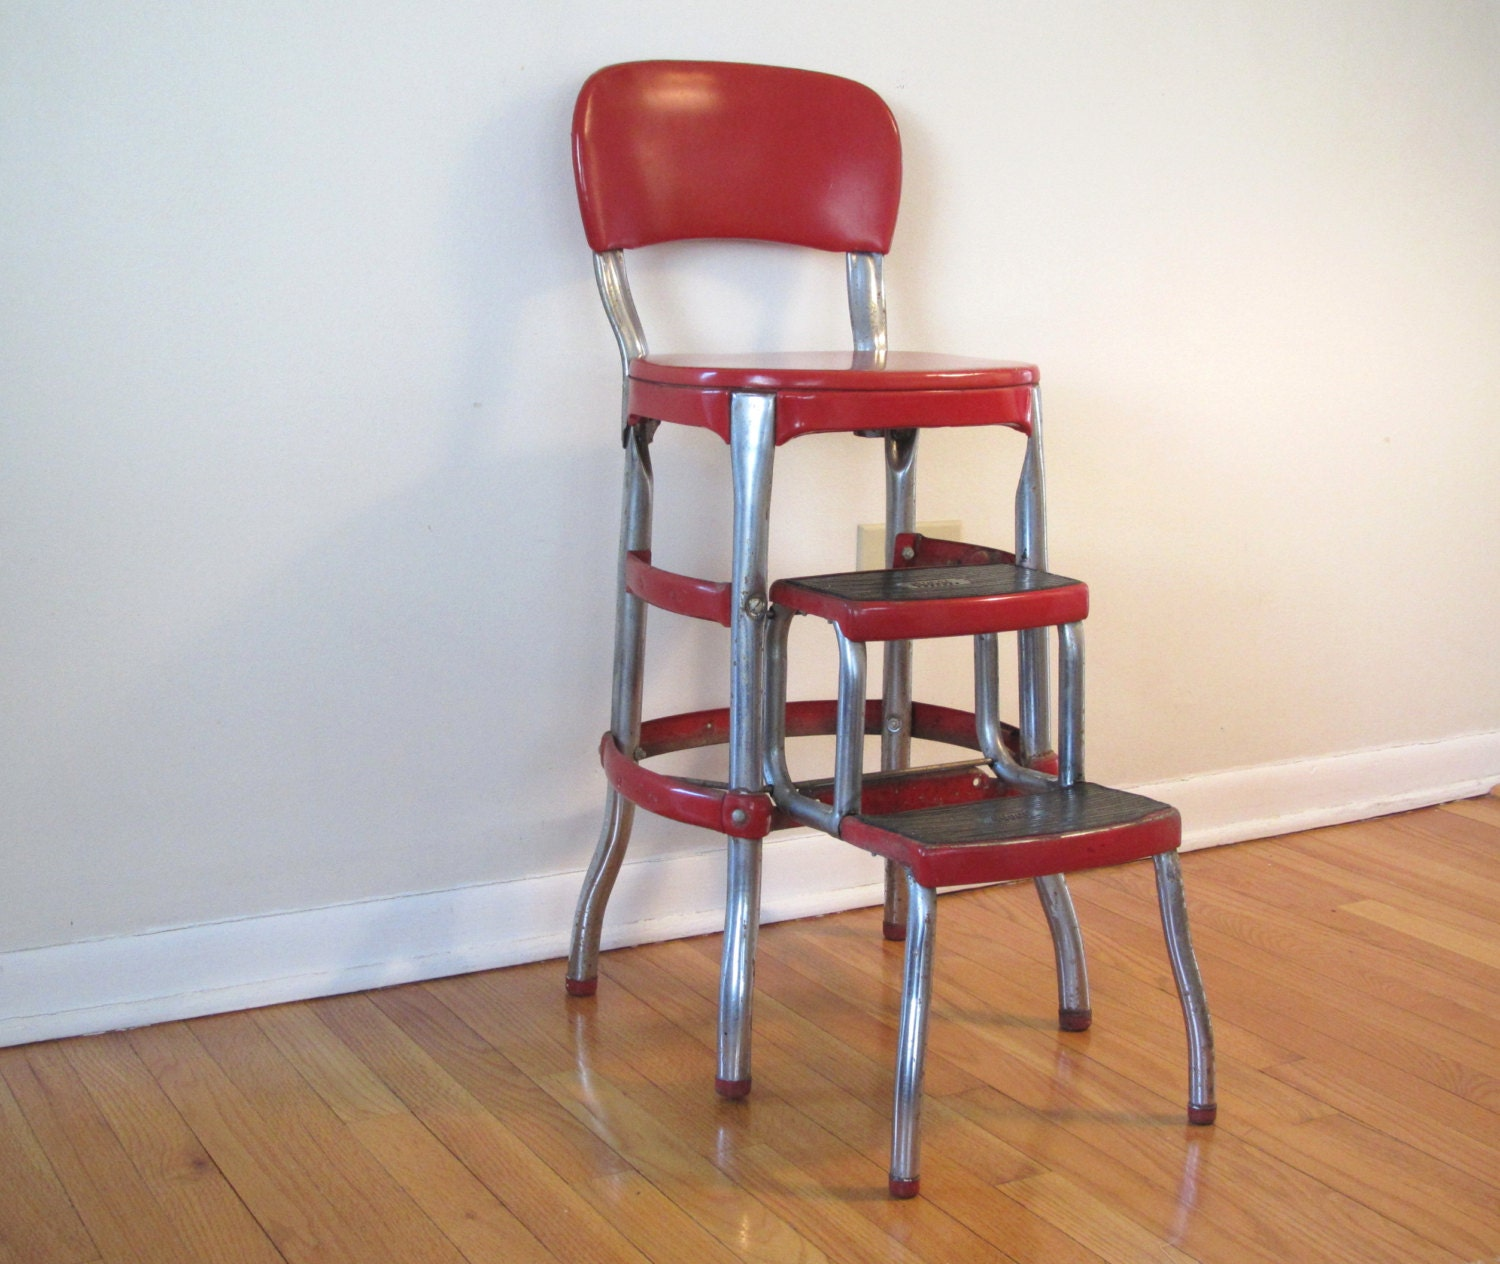 Vintage Cosco Stool Retro Red Kitchen Stool